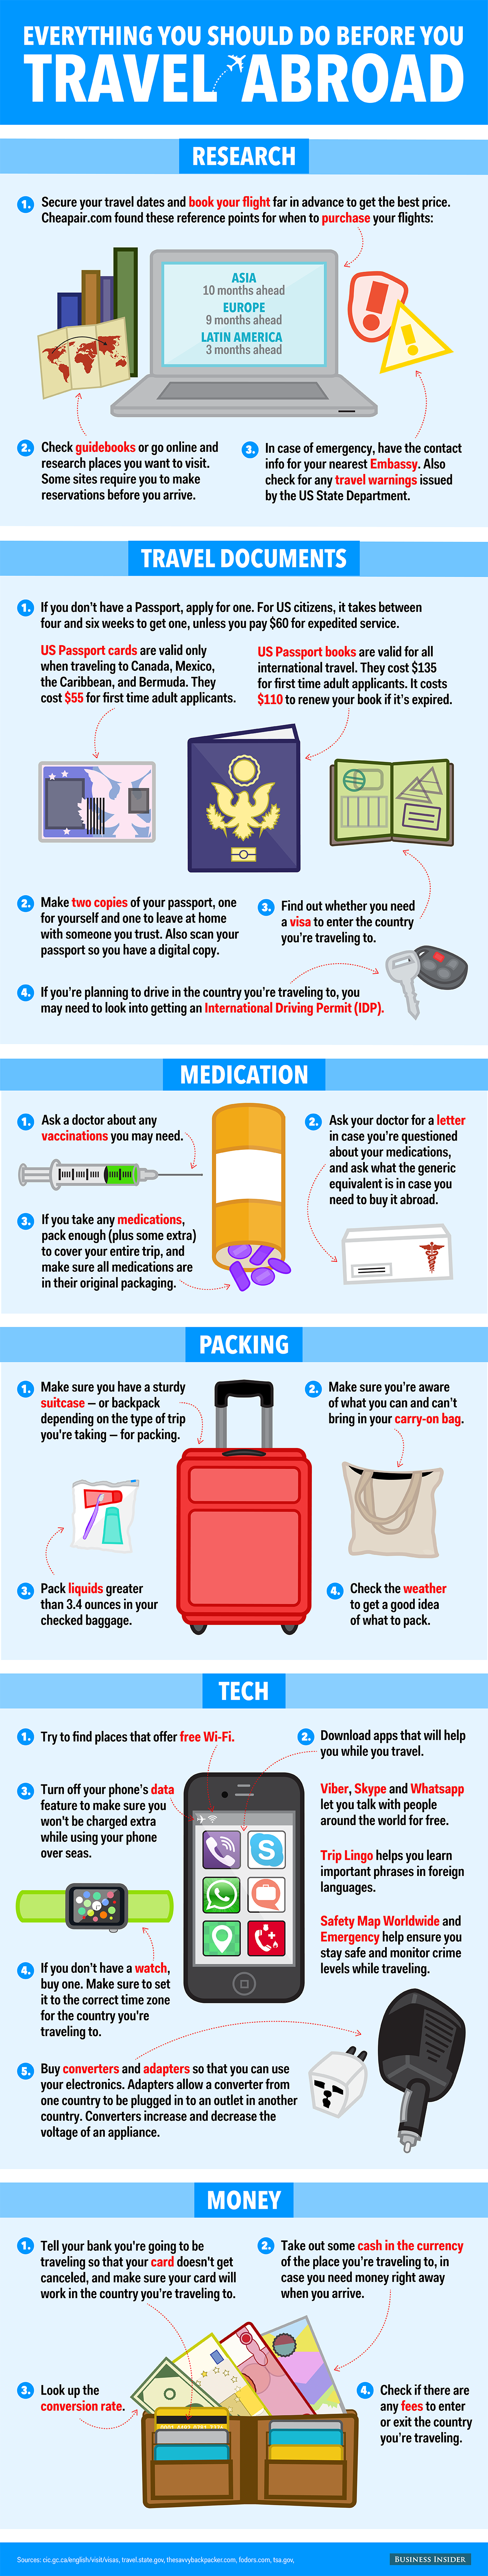 What You Need To Do Before Traveling Abroad - Infographic